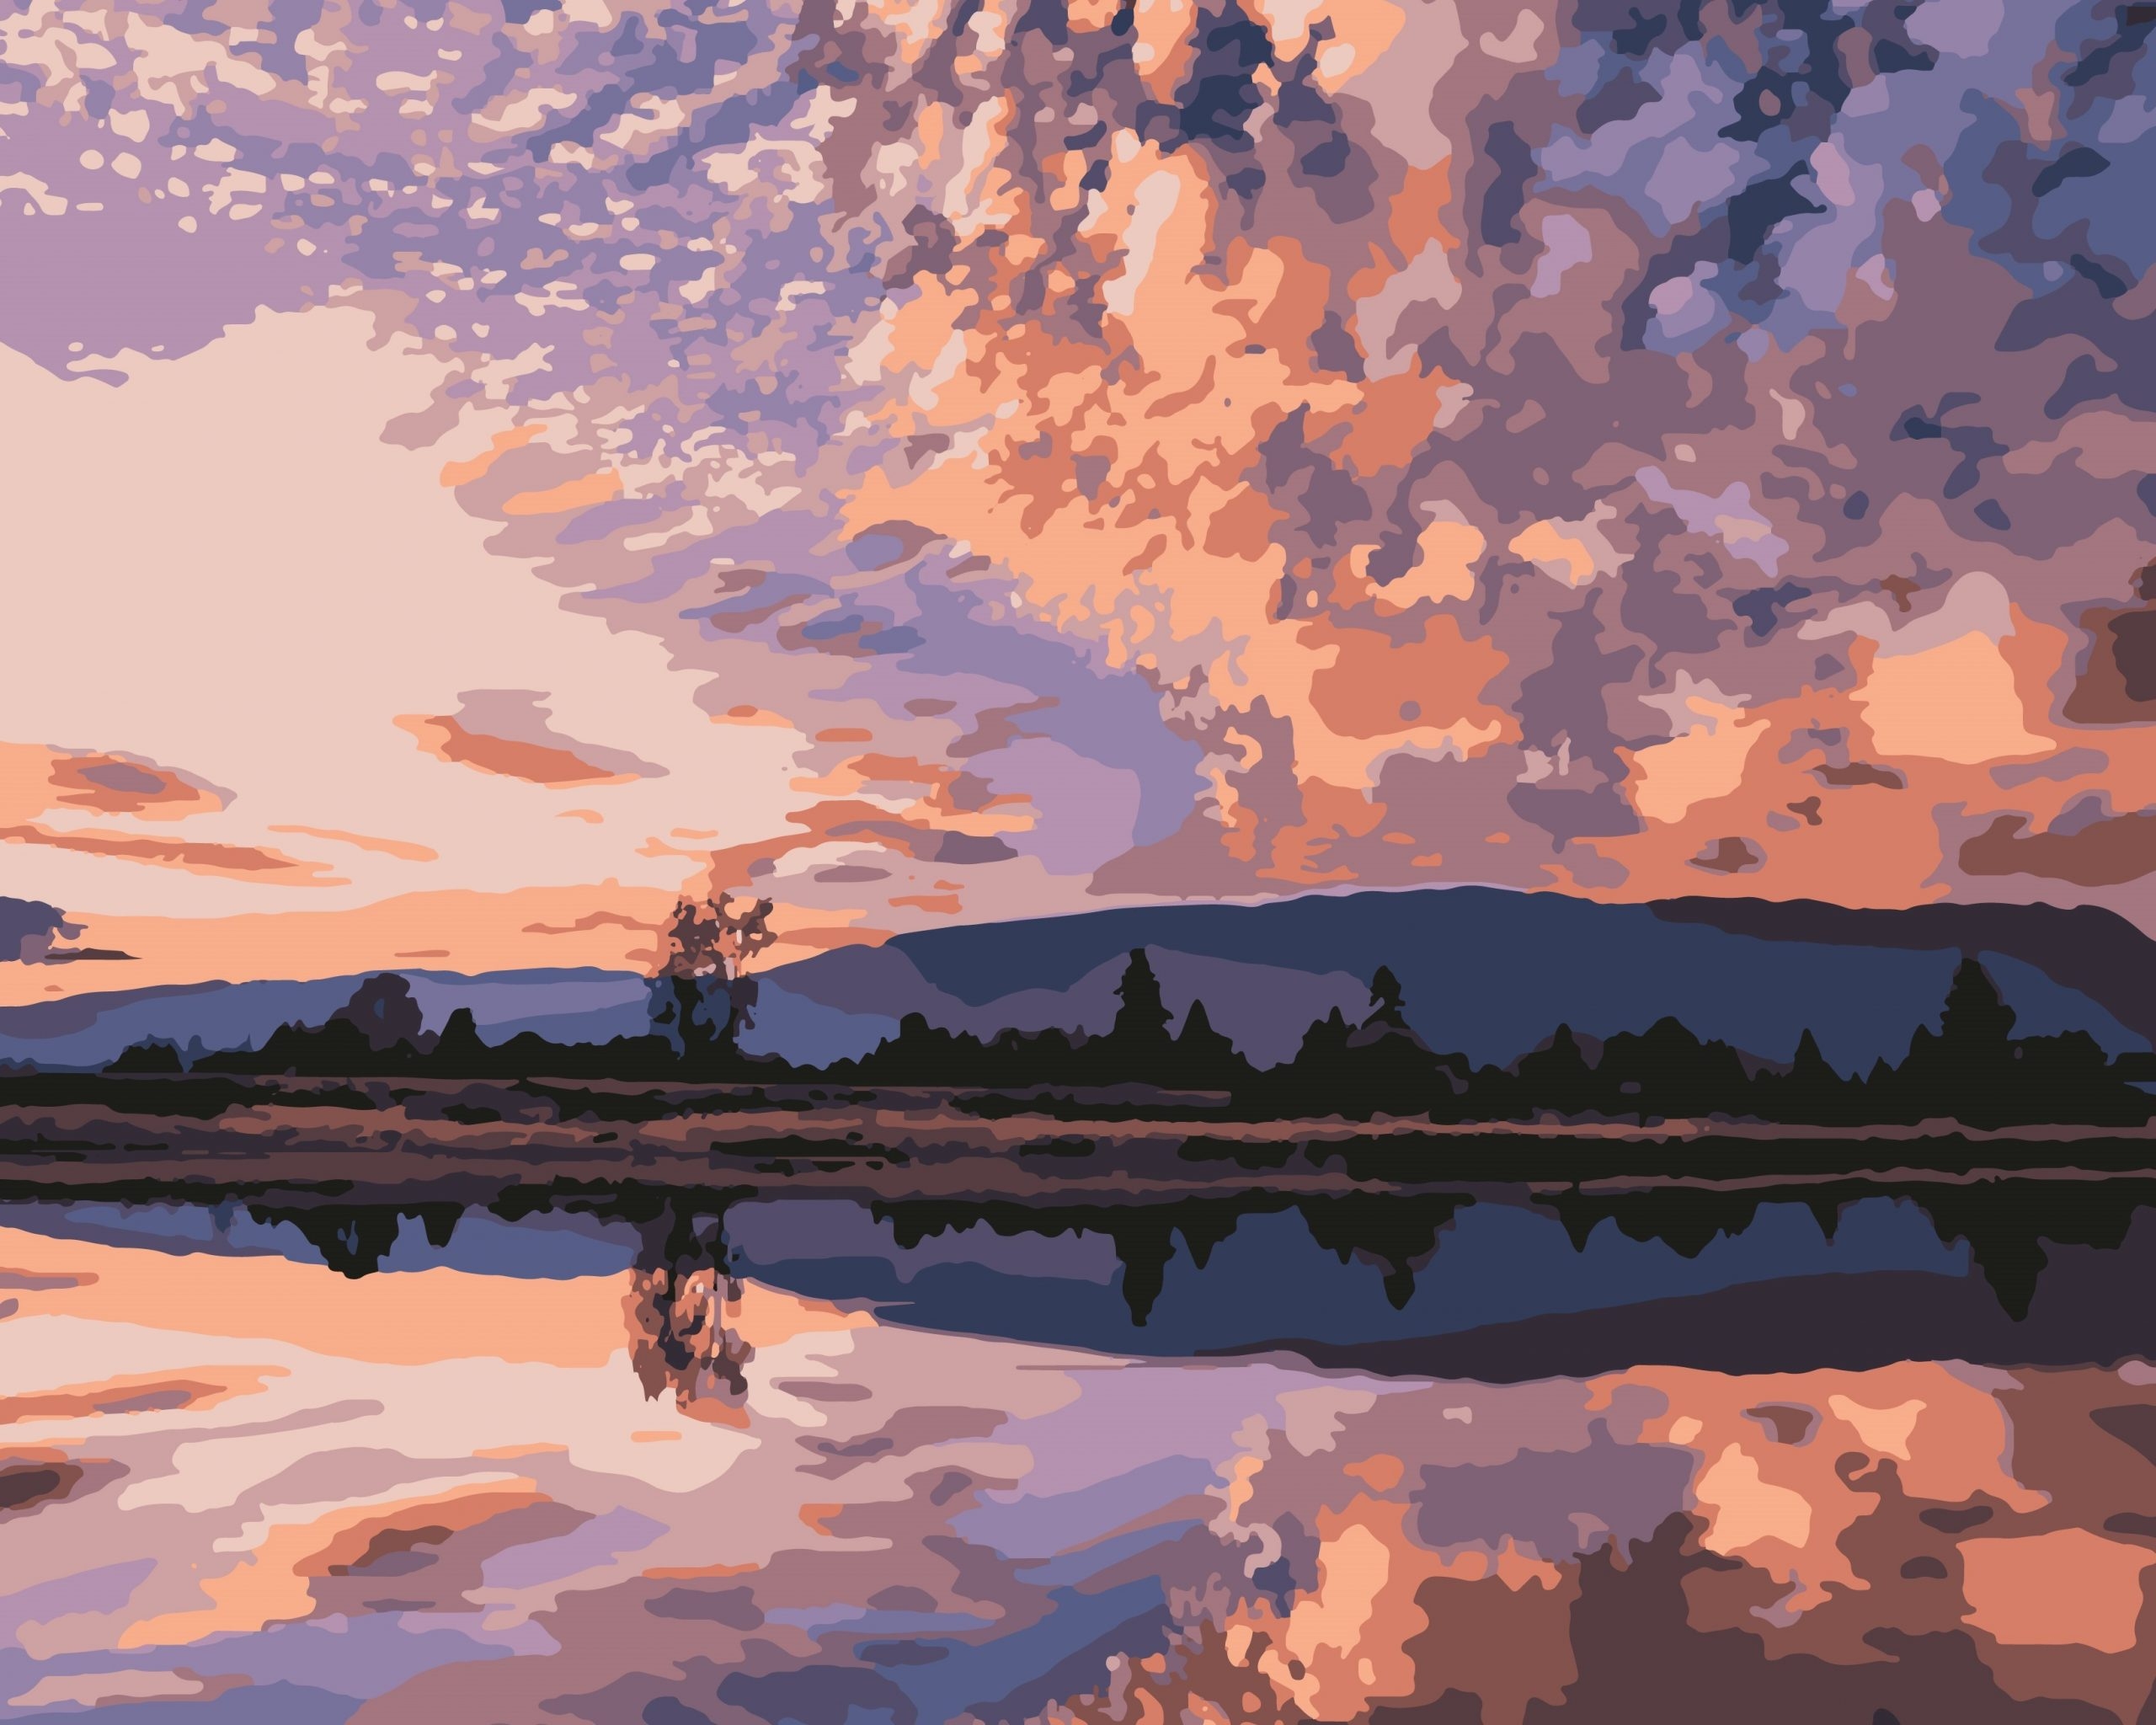 Illustration of a lake and clouds